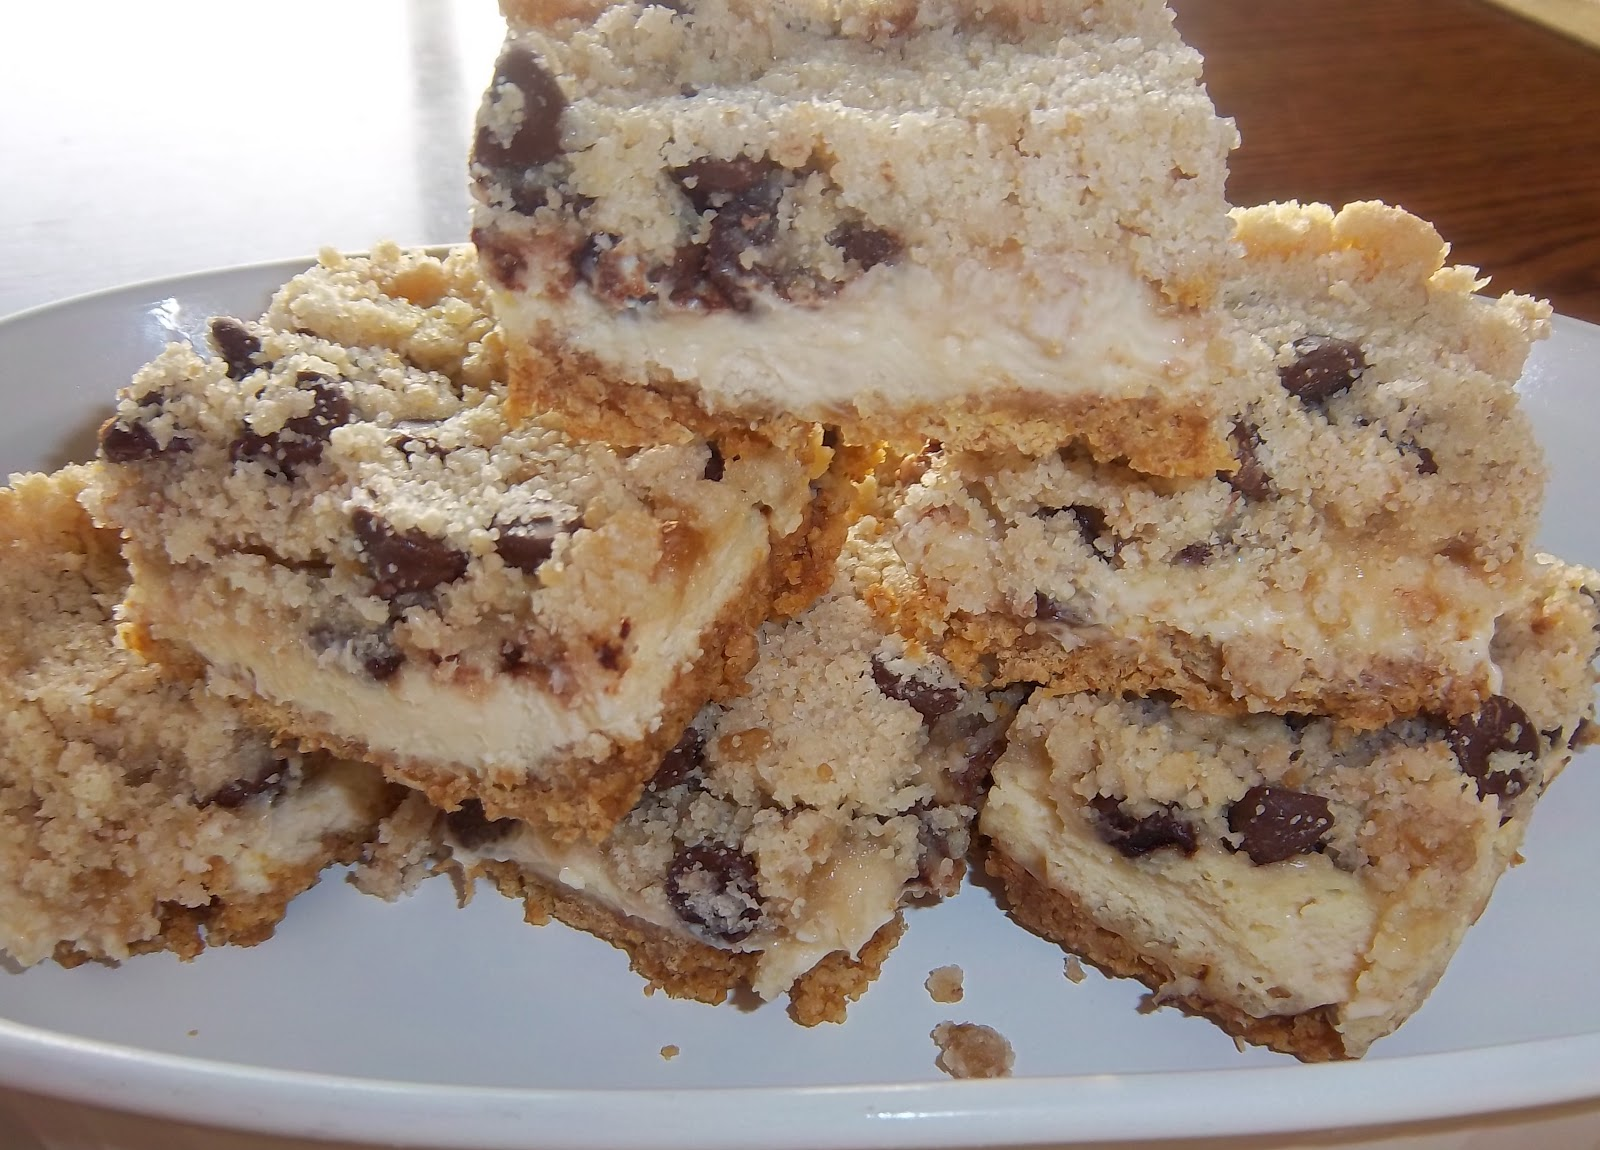 The best is yet to come: Chocolate Chip Cookie Dough ...